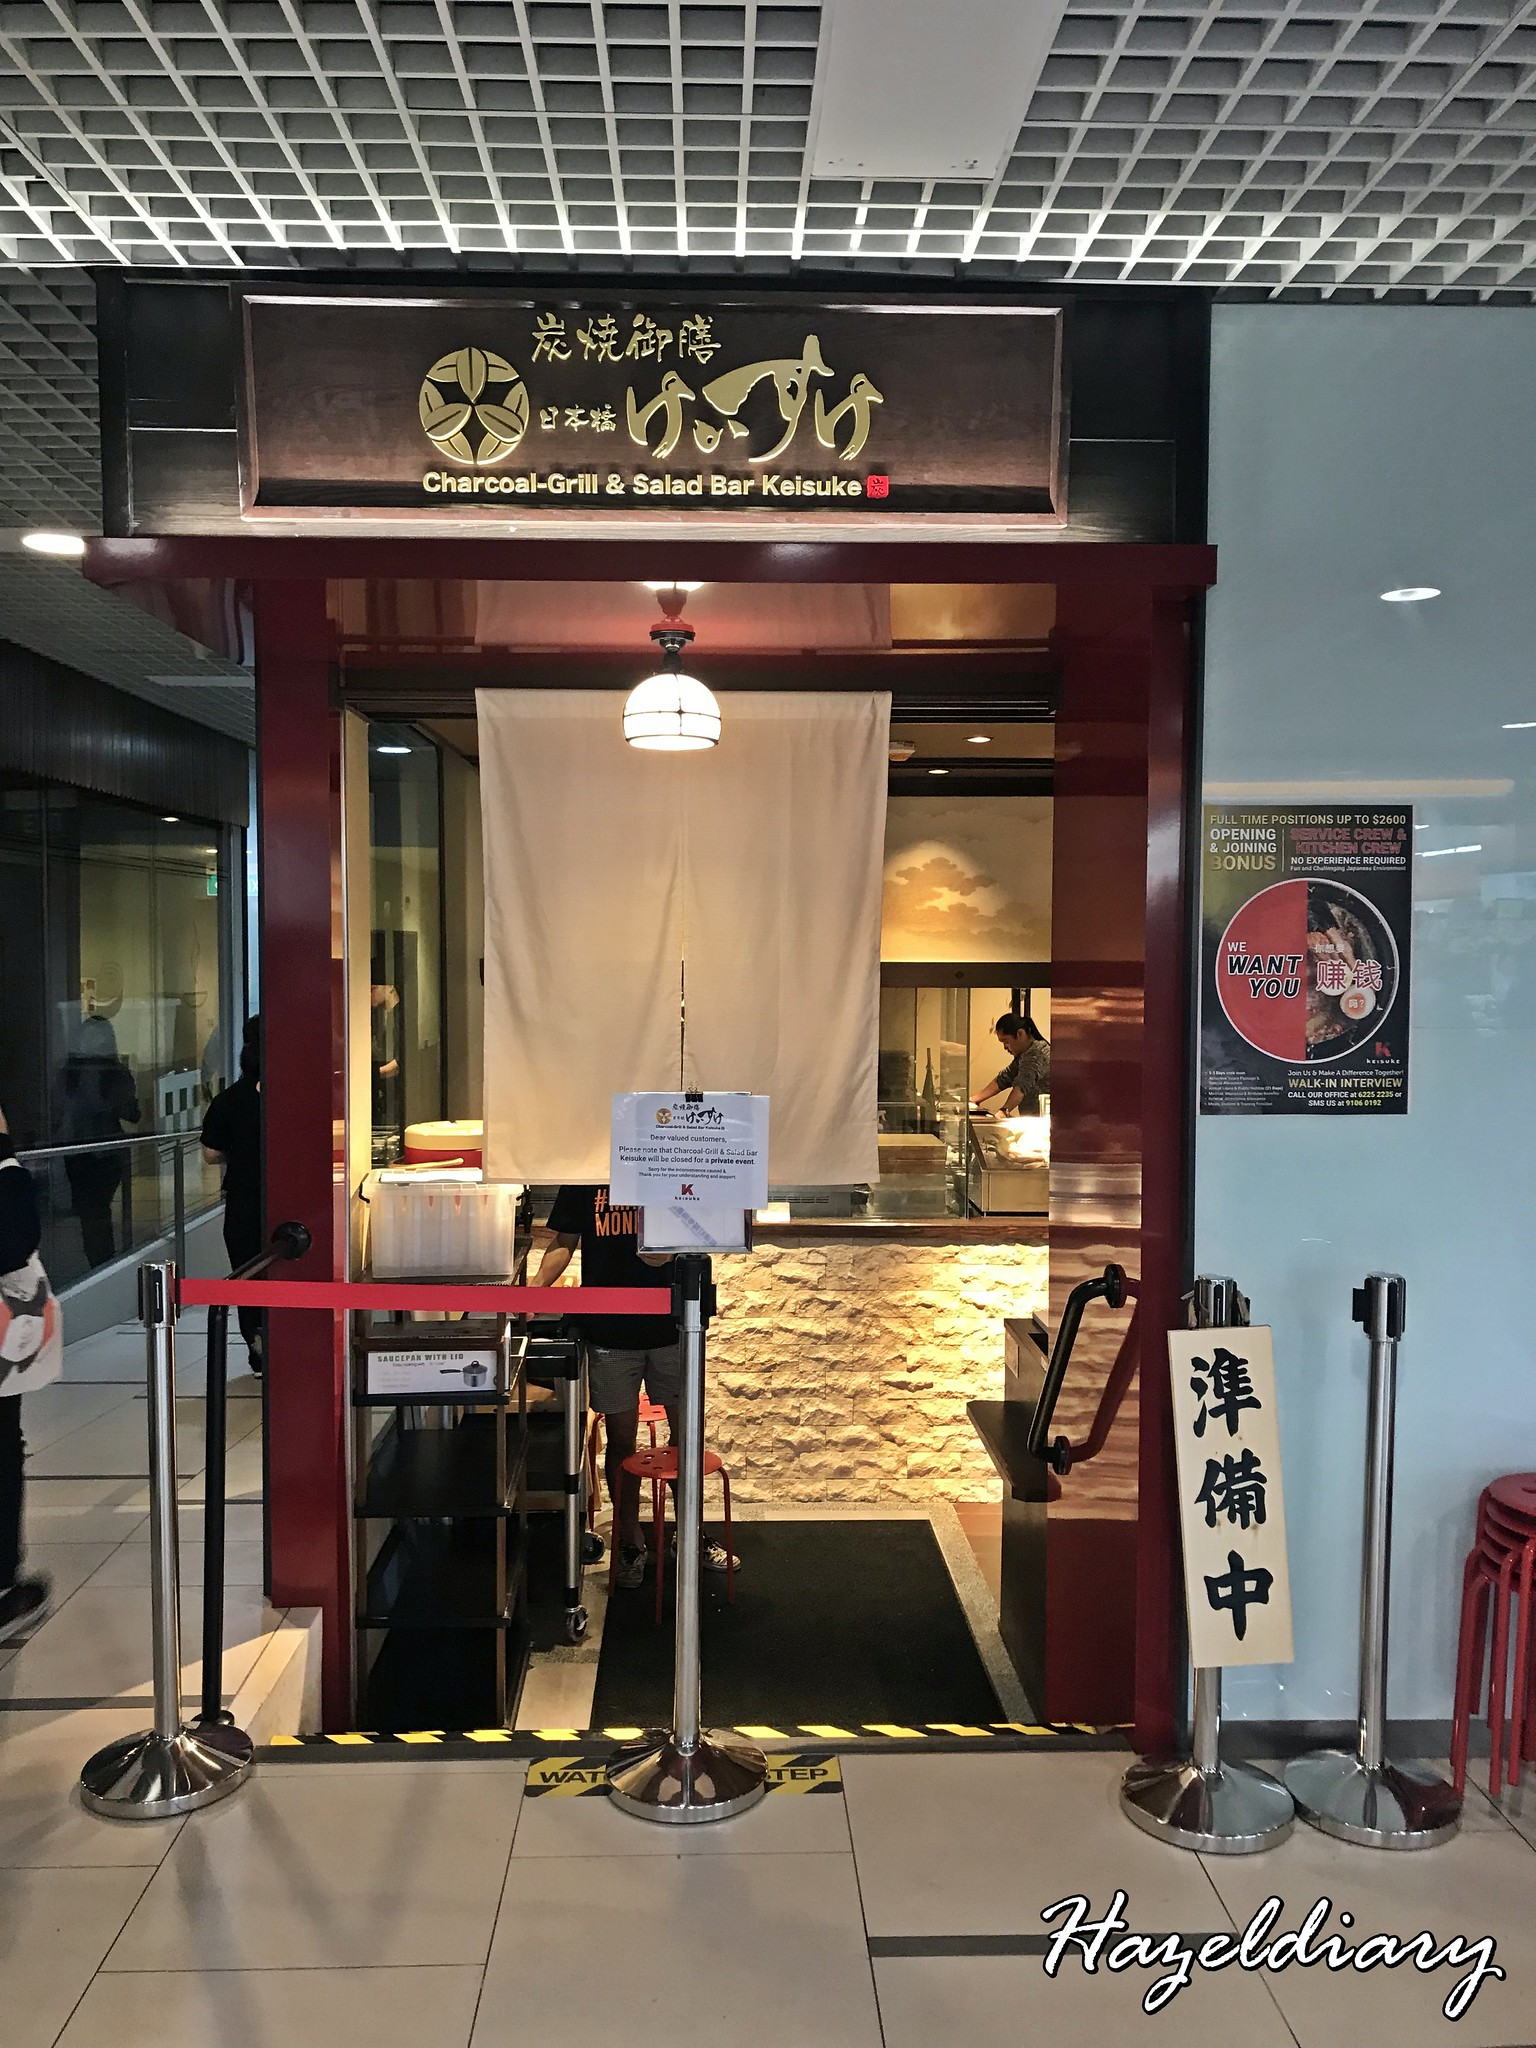 Charcoal grill and salad bar keisuke singapore-Paya Lebar Square